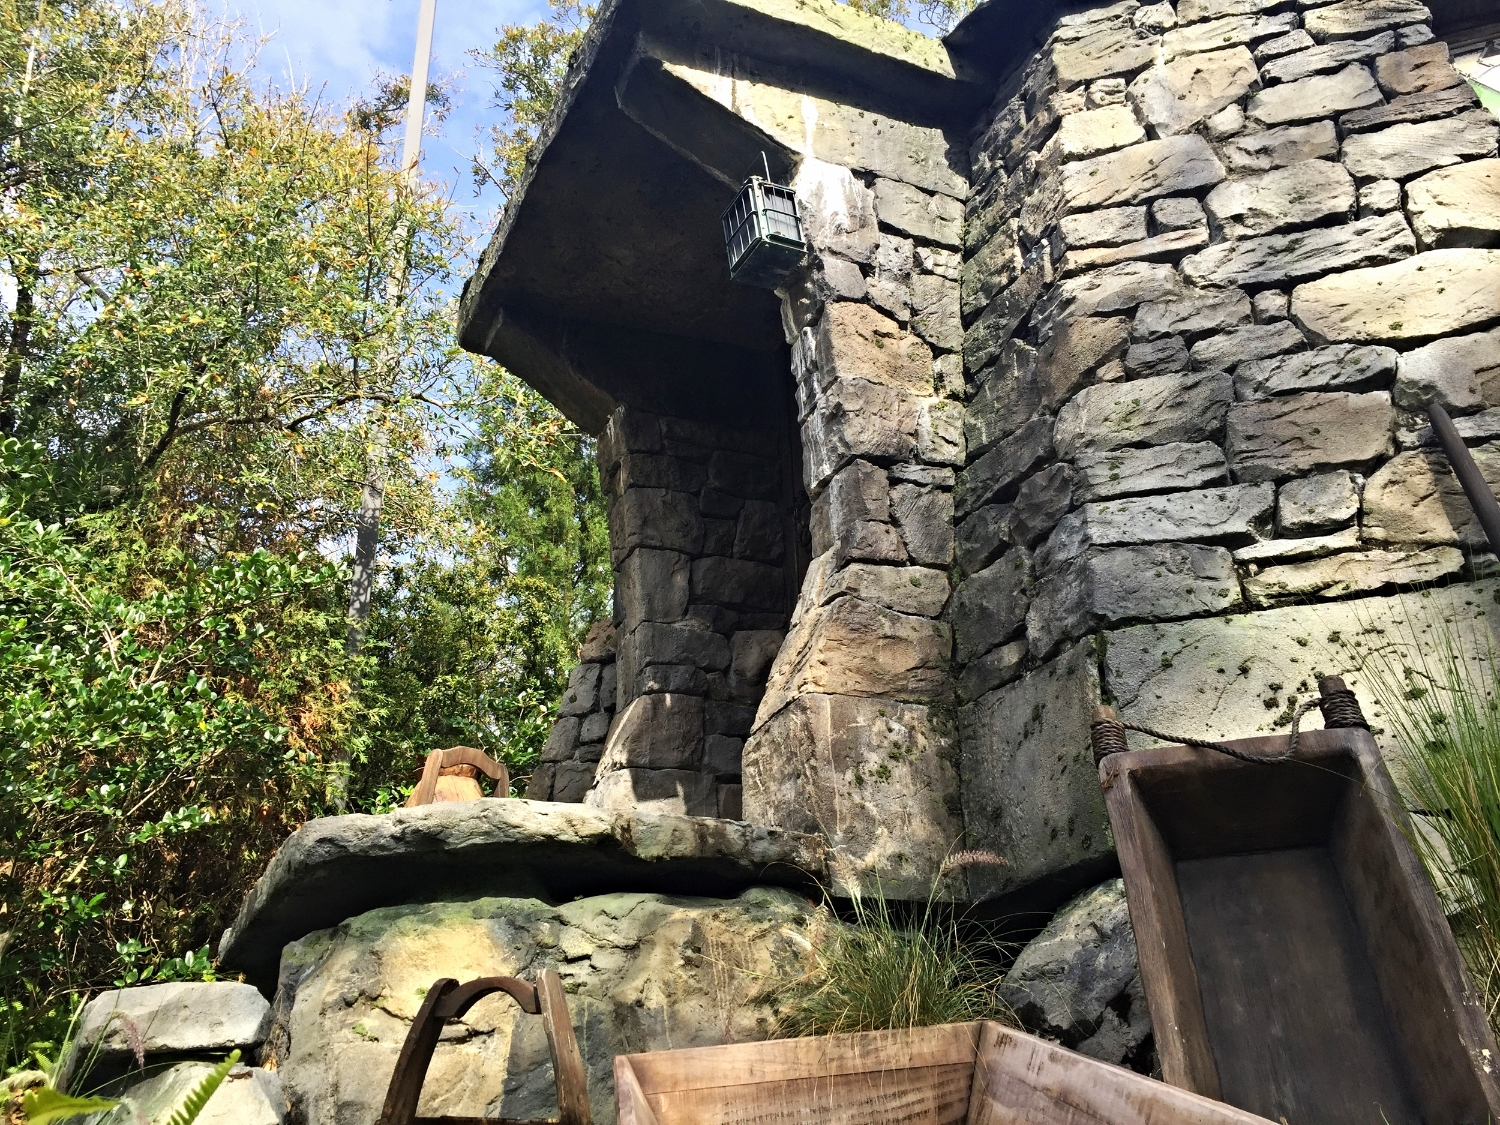 Seeing Hagrid's Front Porch From the Flight of the Hippogriff Queue